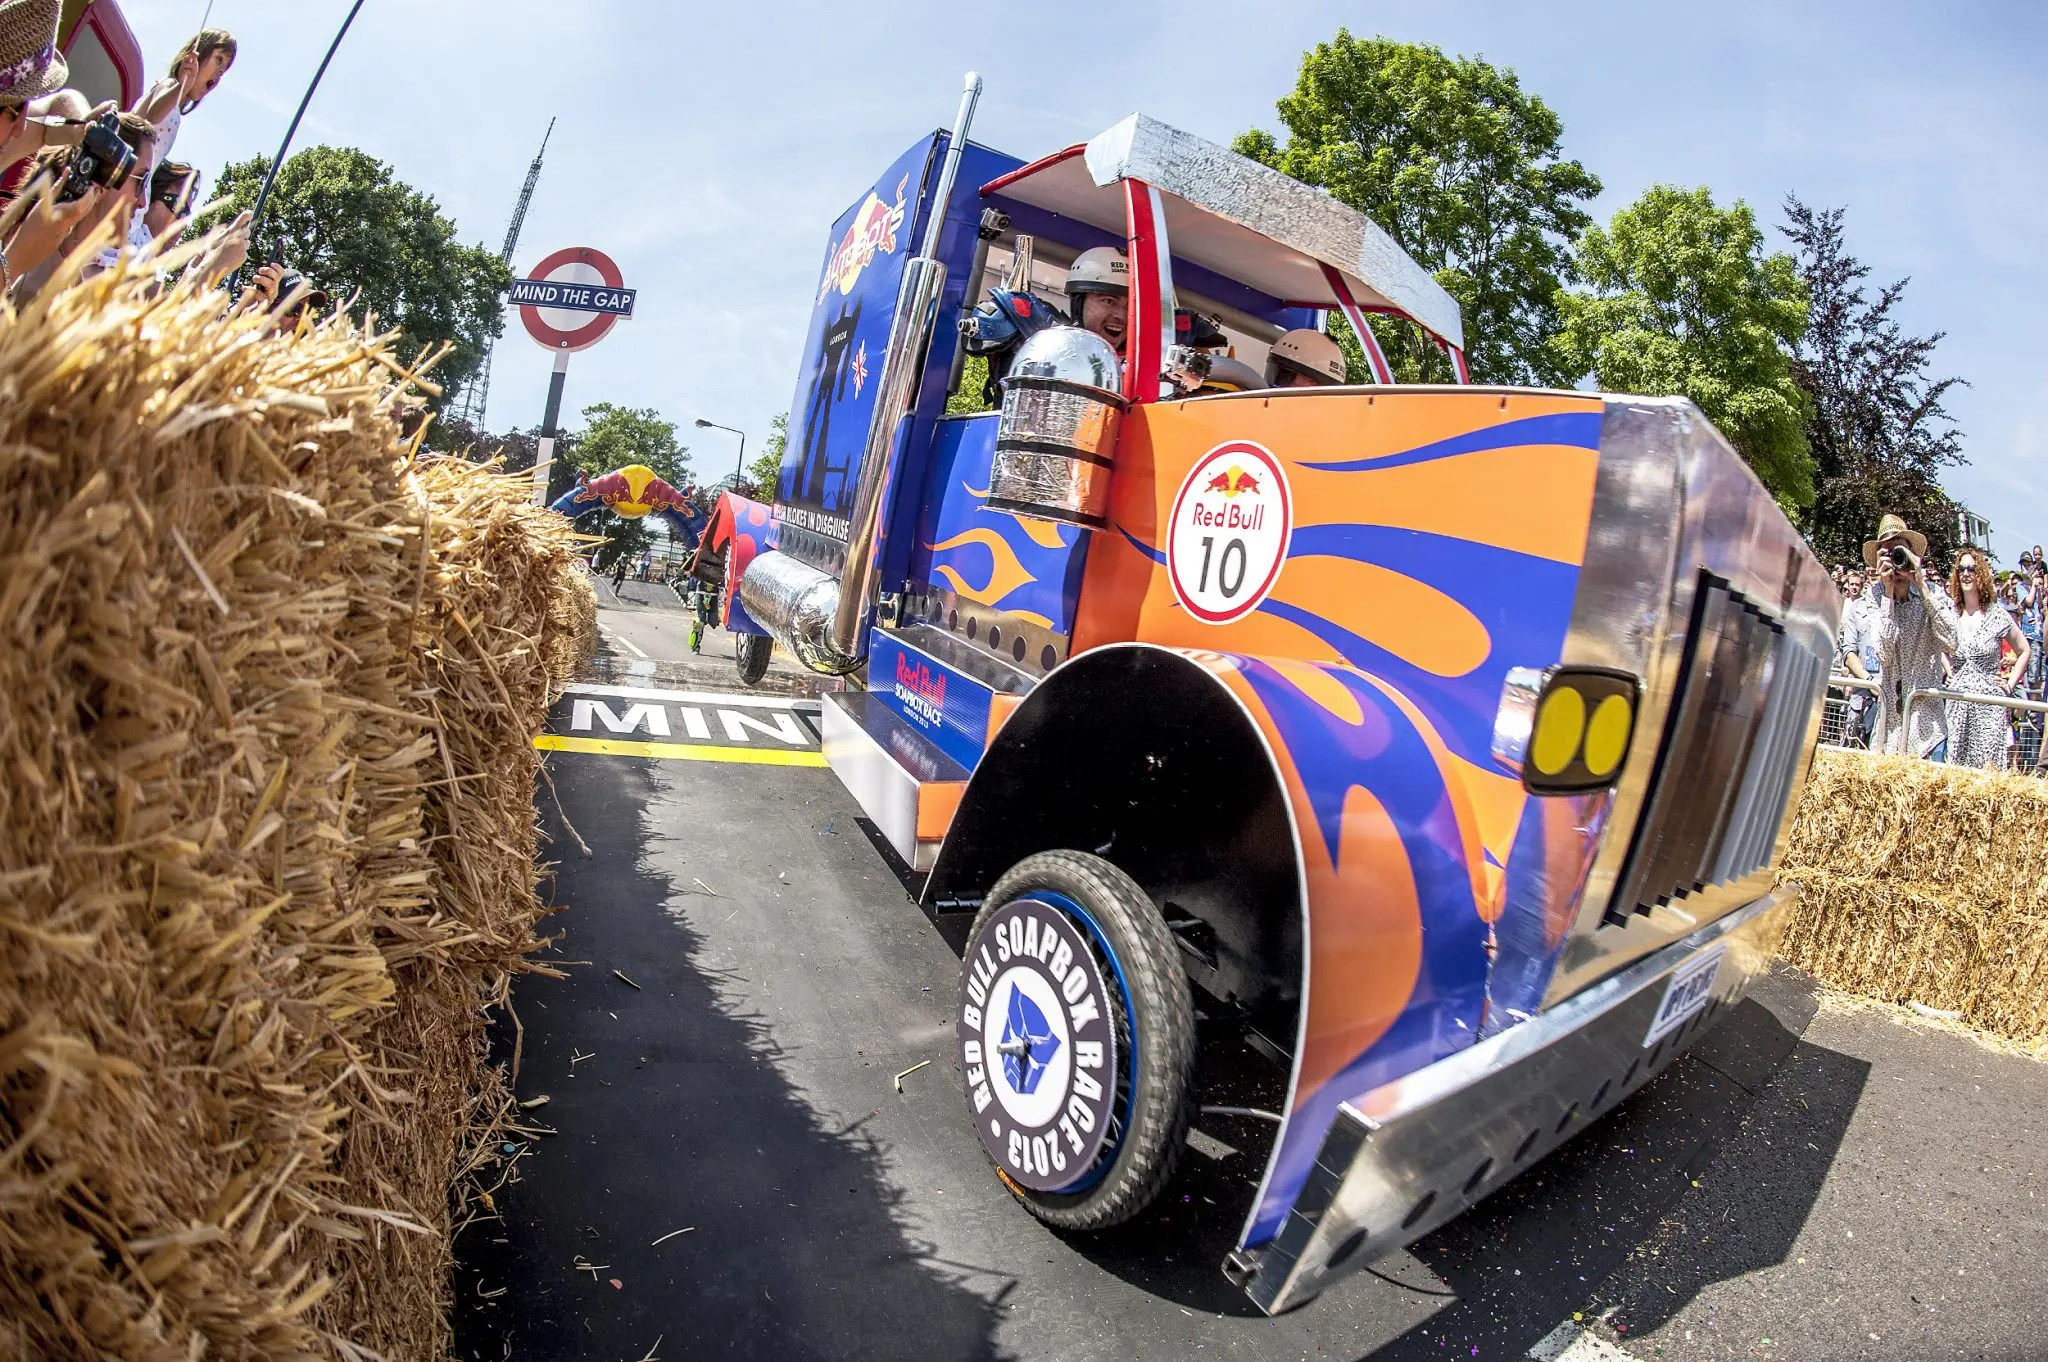 red bull soapbox race 2015 london contrary life. Black Bedroom Furniture Sets. Home Design Ideas